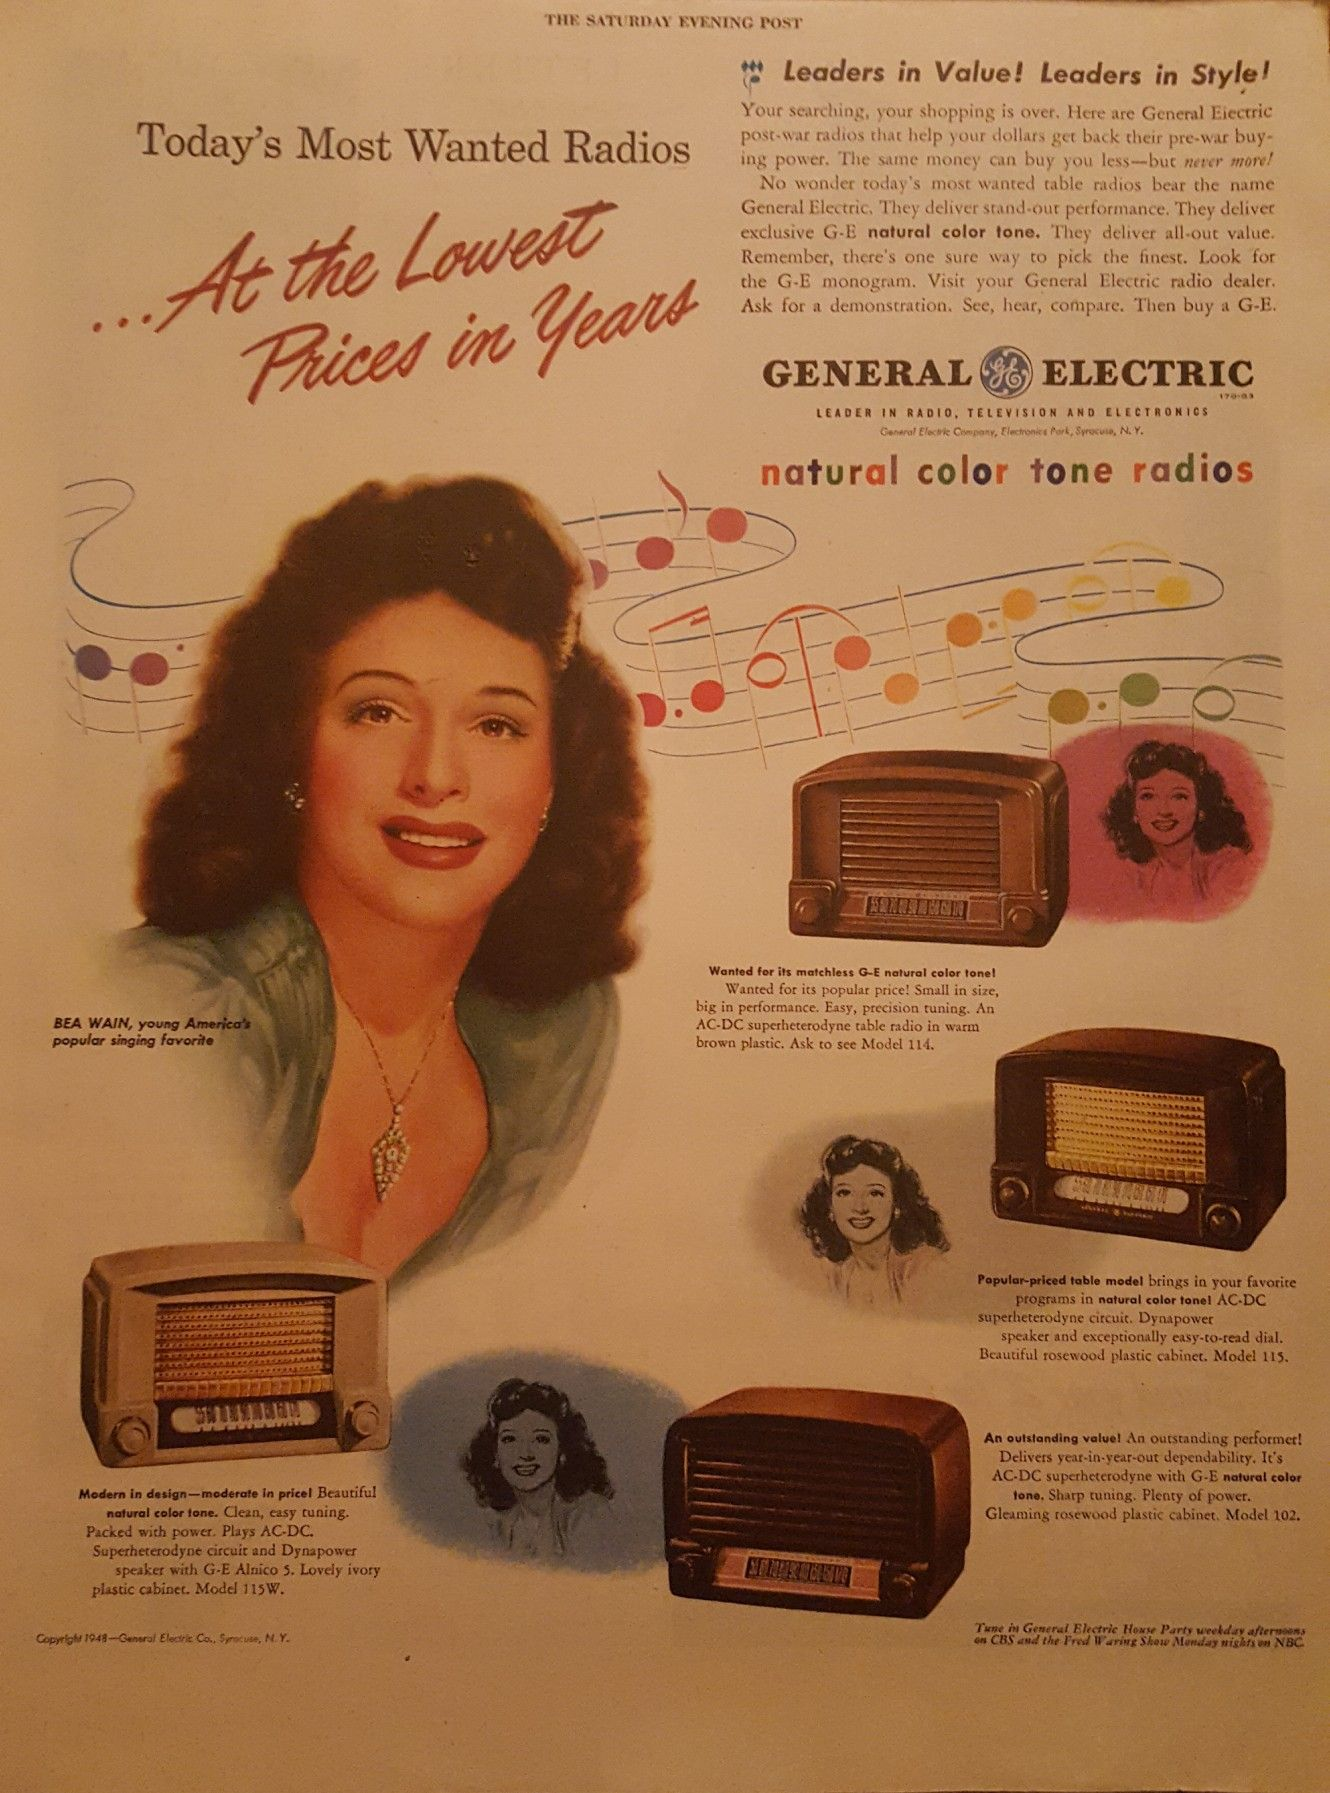 Bea Wain in General Electric ad